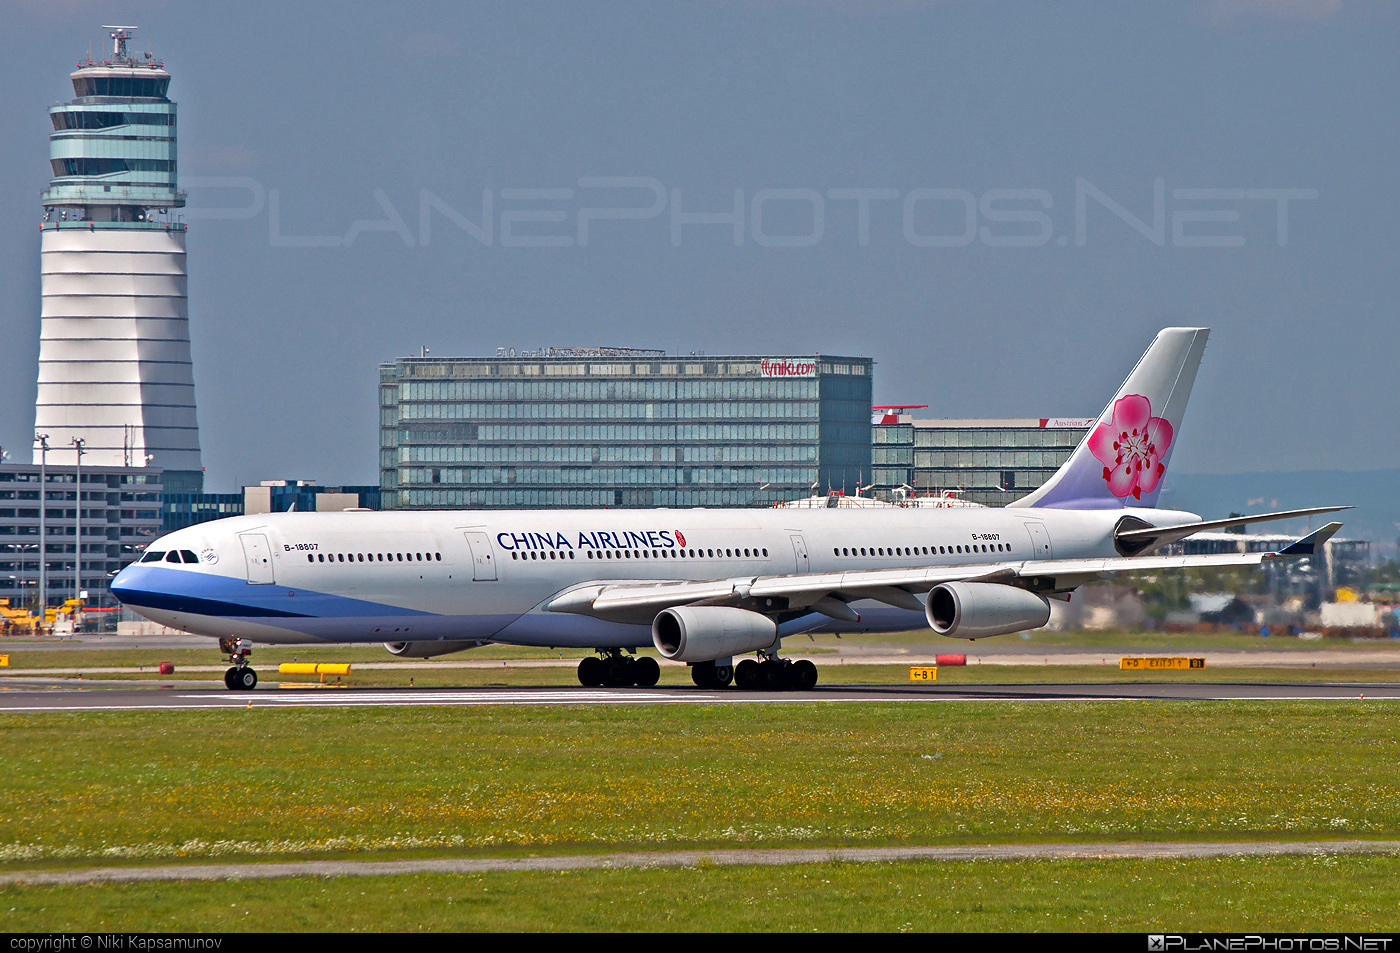 Airbus A340-313 - B-18807 operated by China Airlines #a340 #a340family #airbus #airbus340 #chinaairlines